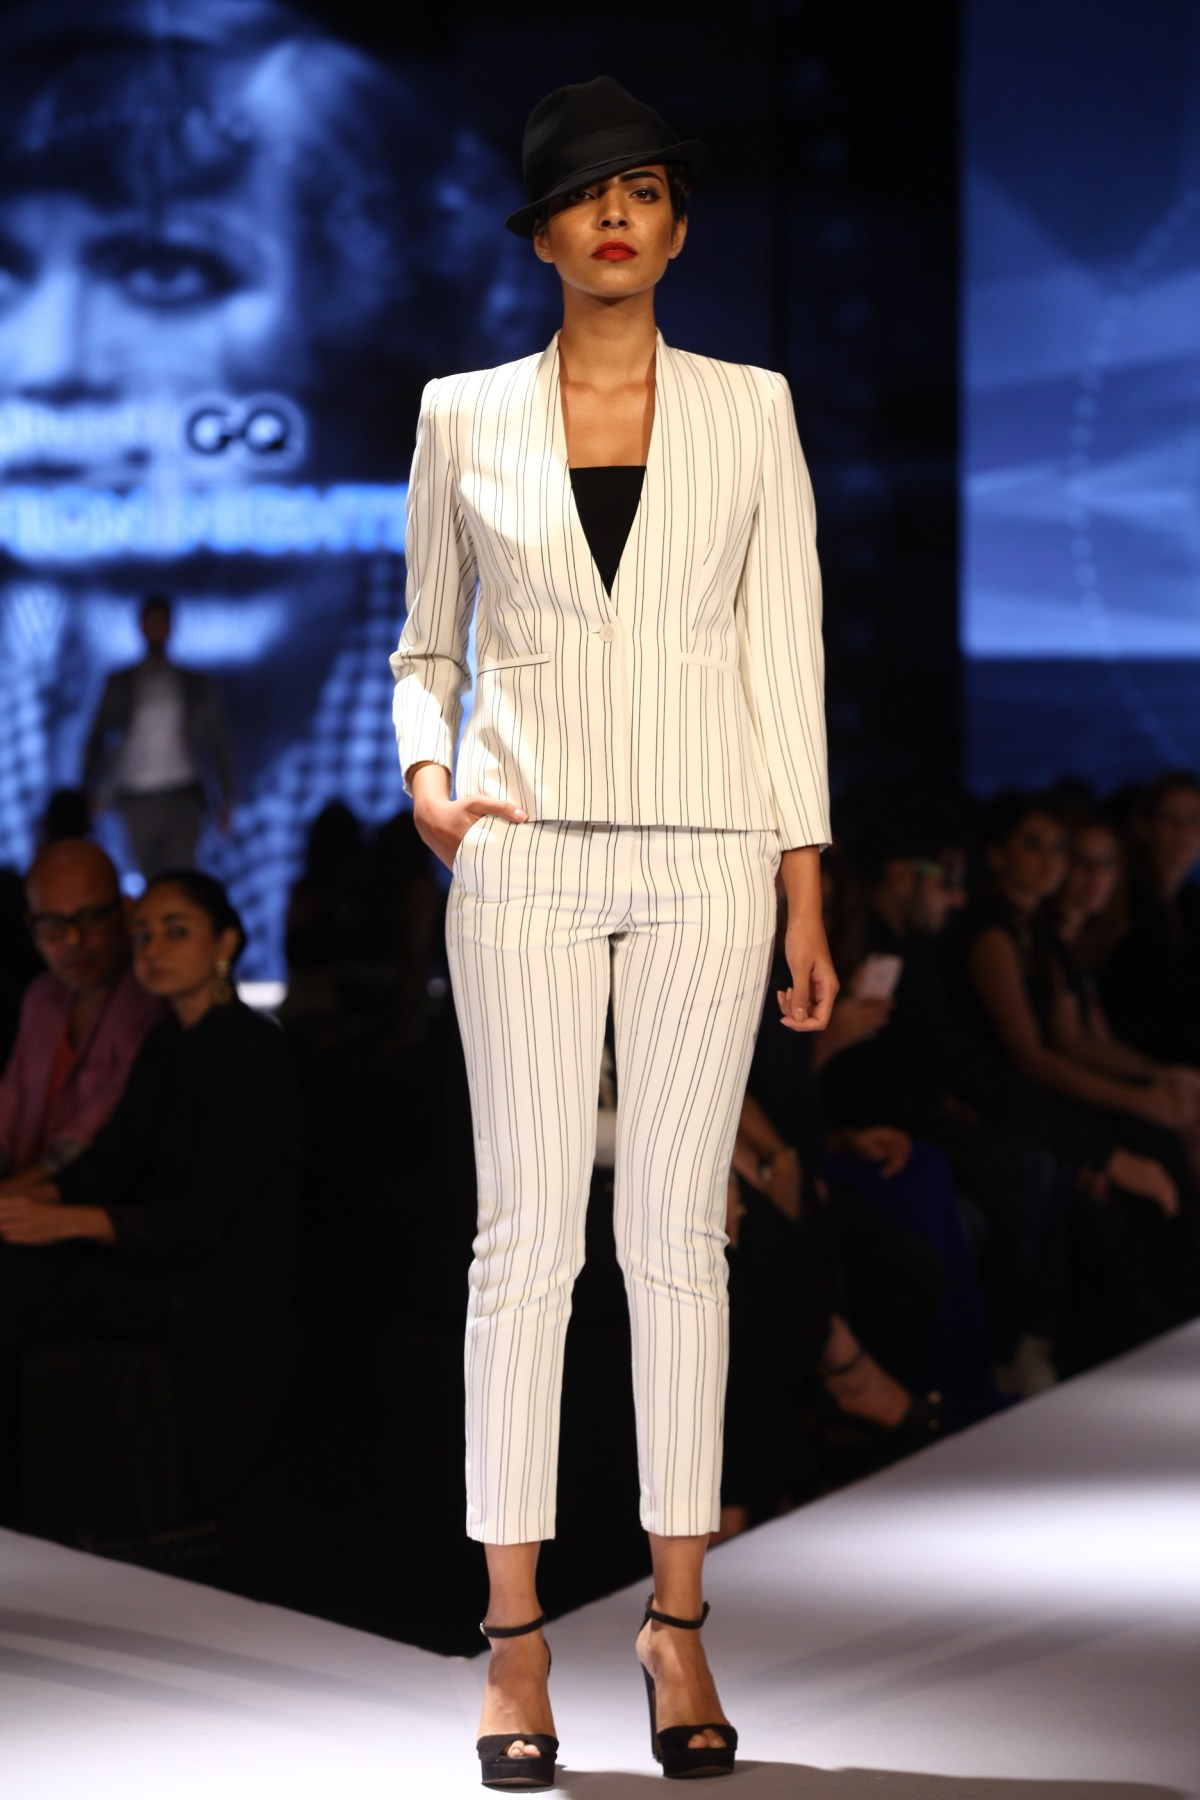 Model in Van Heusen collection on Day 2 of Van Heusen + GQ Fashion Nights 2015_1